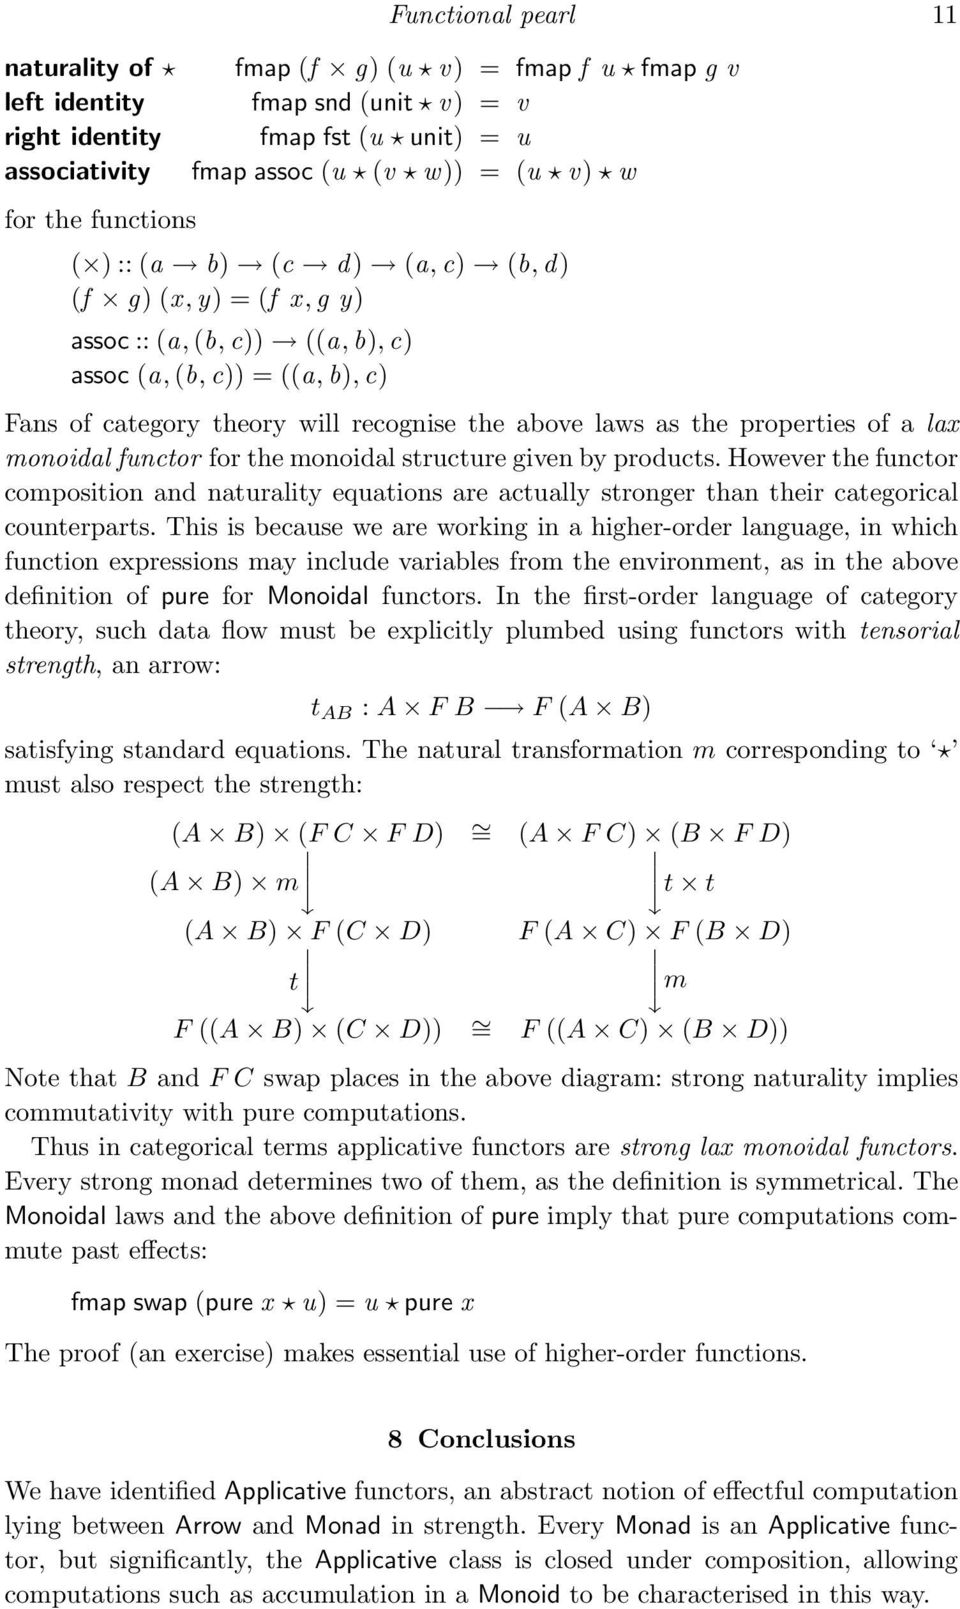 properties of a lax monoidal functor for the monoidal structure given by products. However the functor composition and naturality equations are actually stronger than their categorical counterparts.